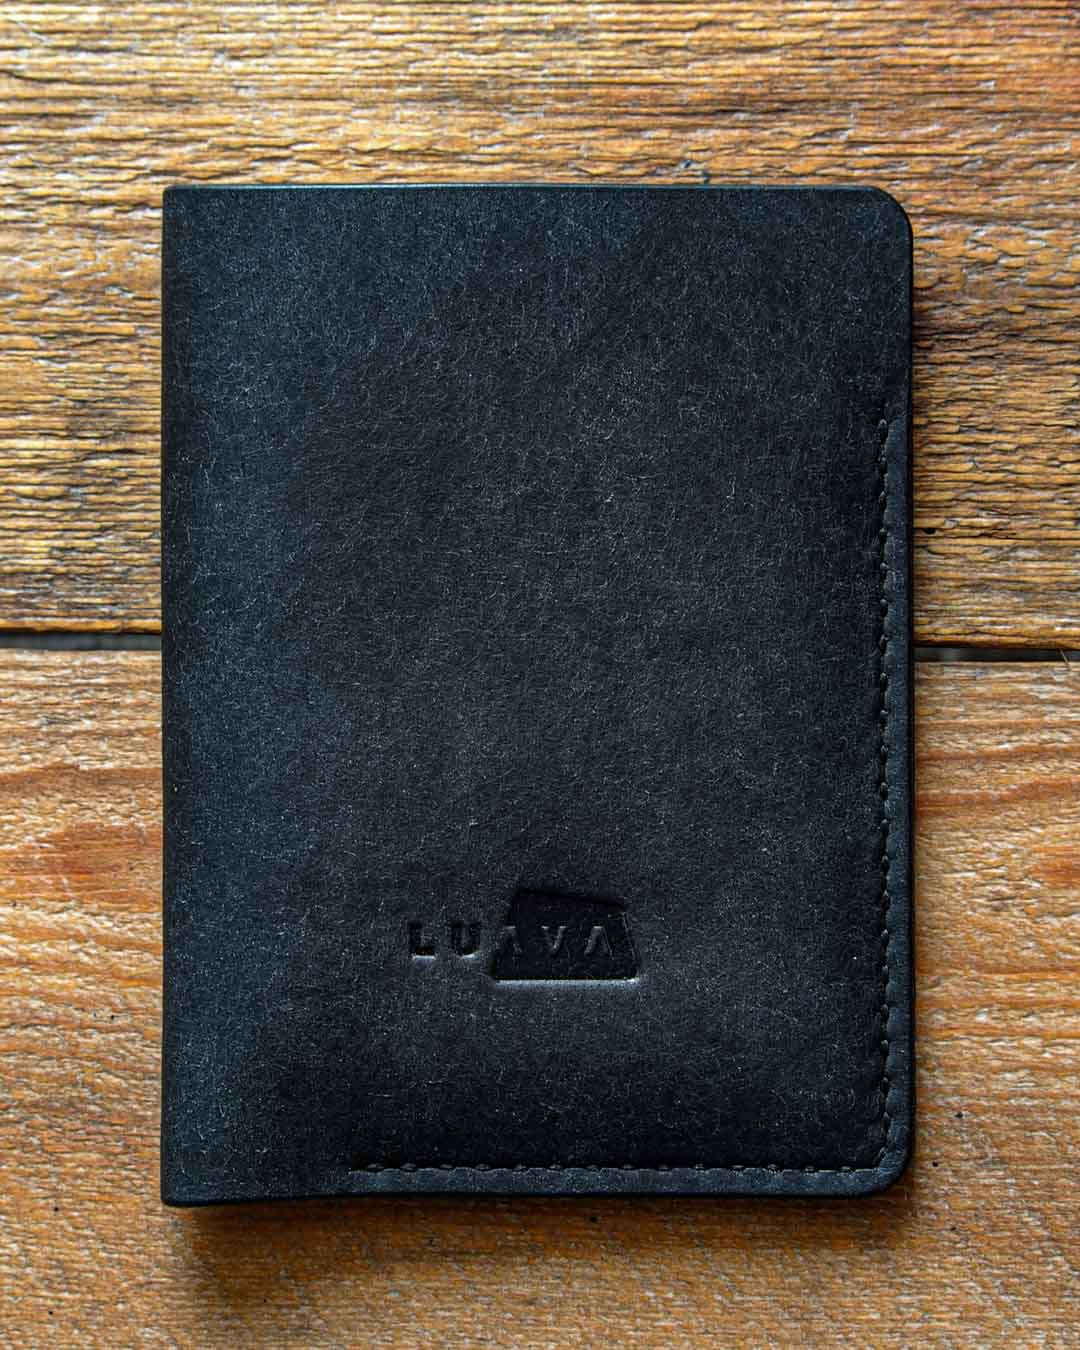 Luava leather passport cover pueblo black